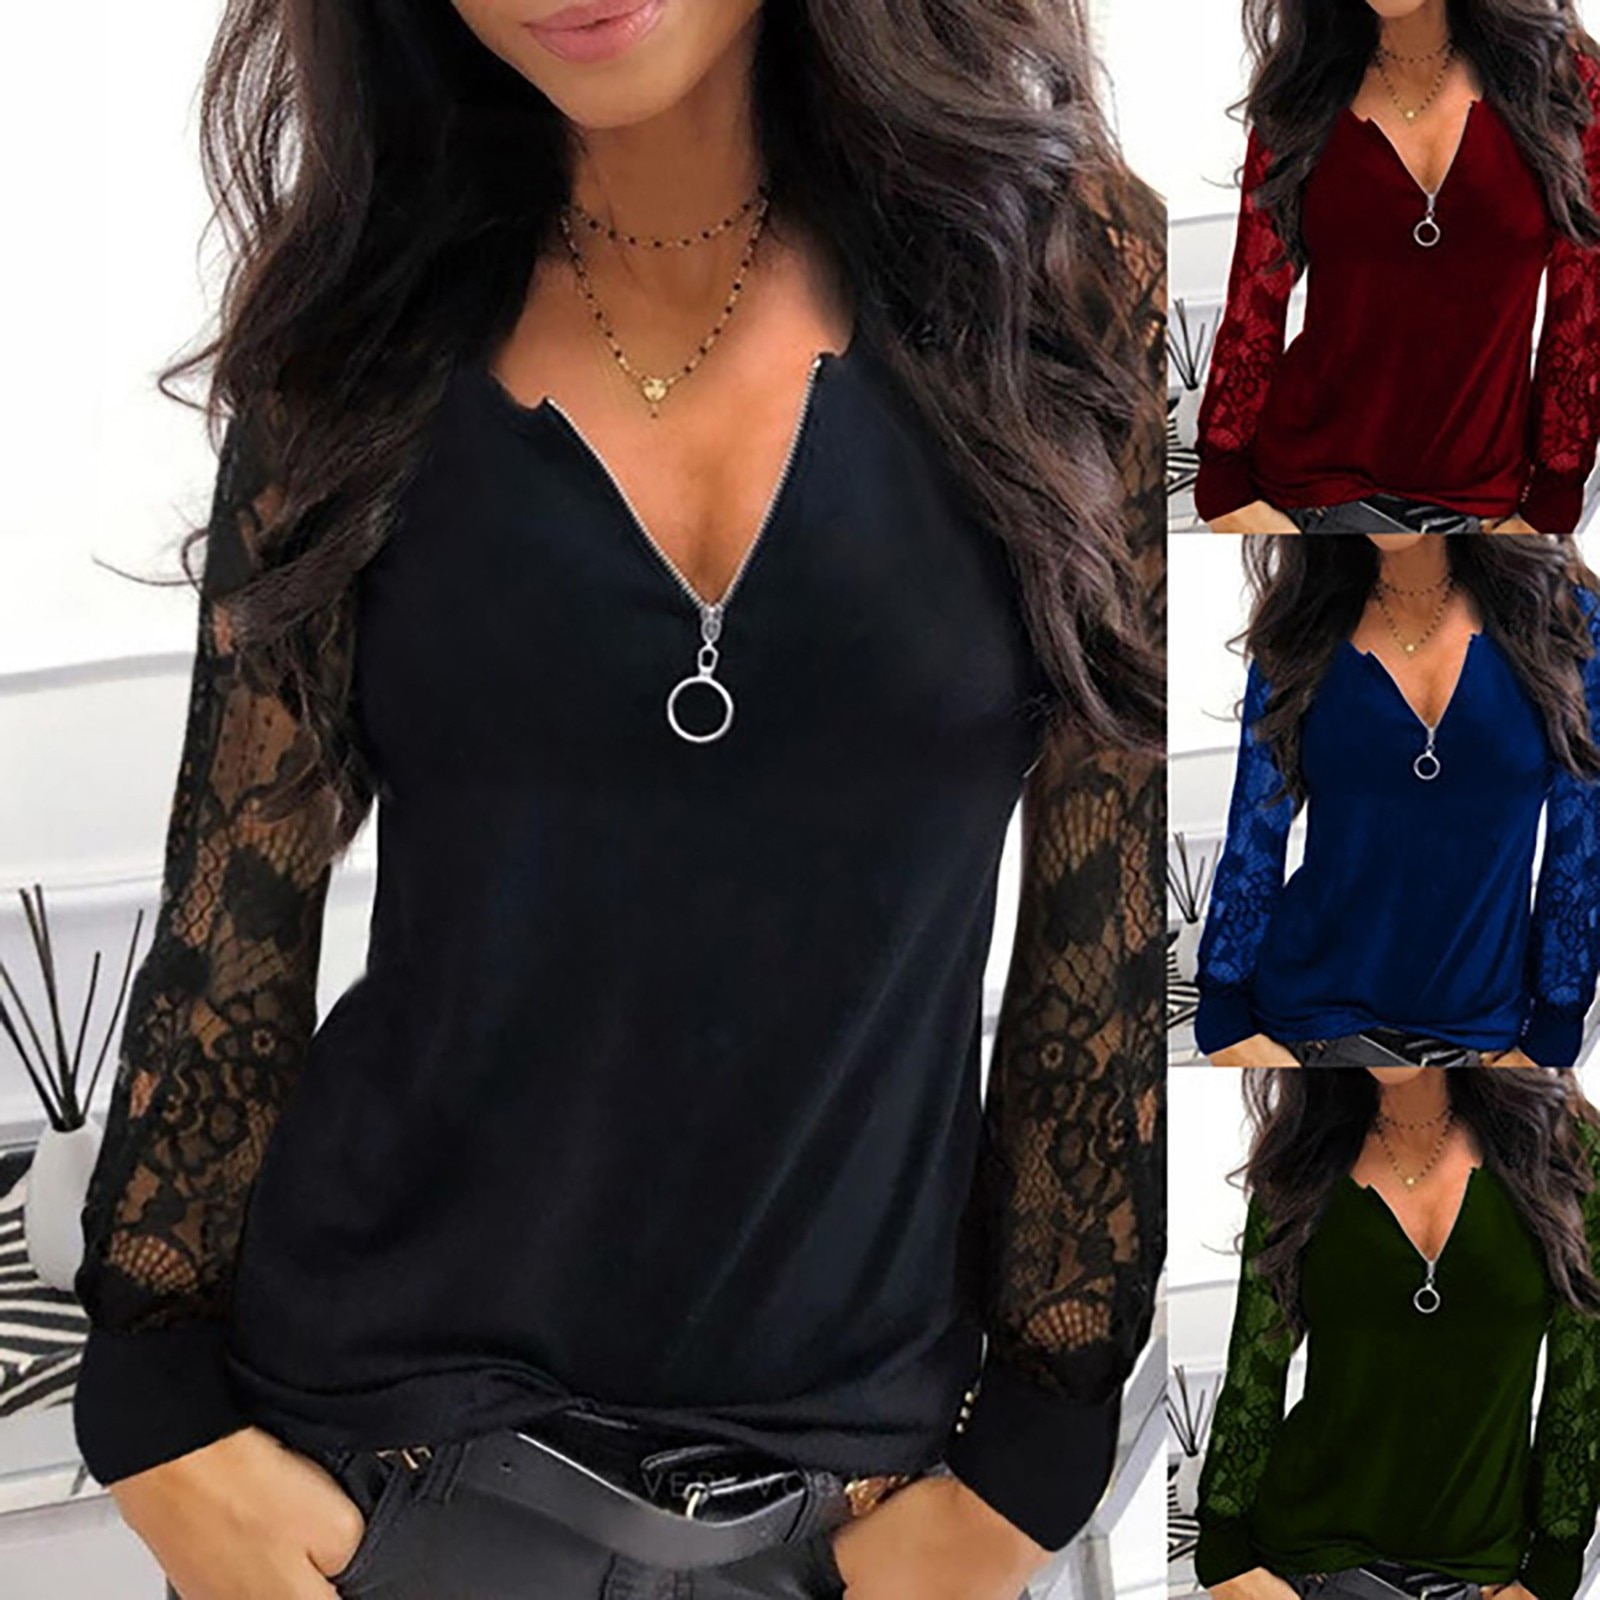 Fashion Lace Mesh Blouse Shirt Loose Sexy Zipper V-Neck Tops Winter Casual Ladies Tops Female Women Long Sleeve Blusas Pullover